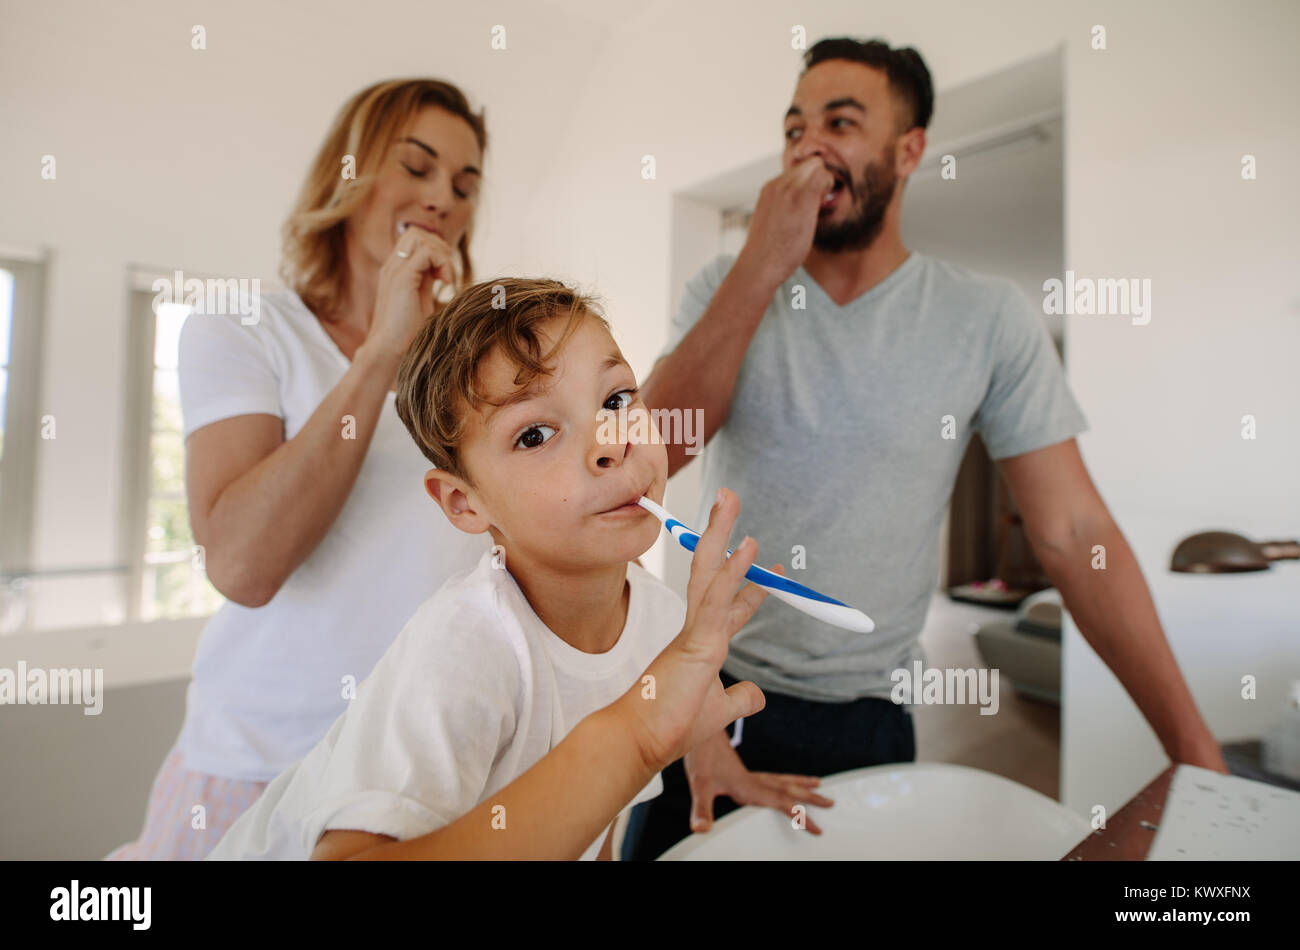 Little boy brushing teeth with his parents in bathroom. Family brushing teeth together in bathroom. - Stock Image